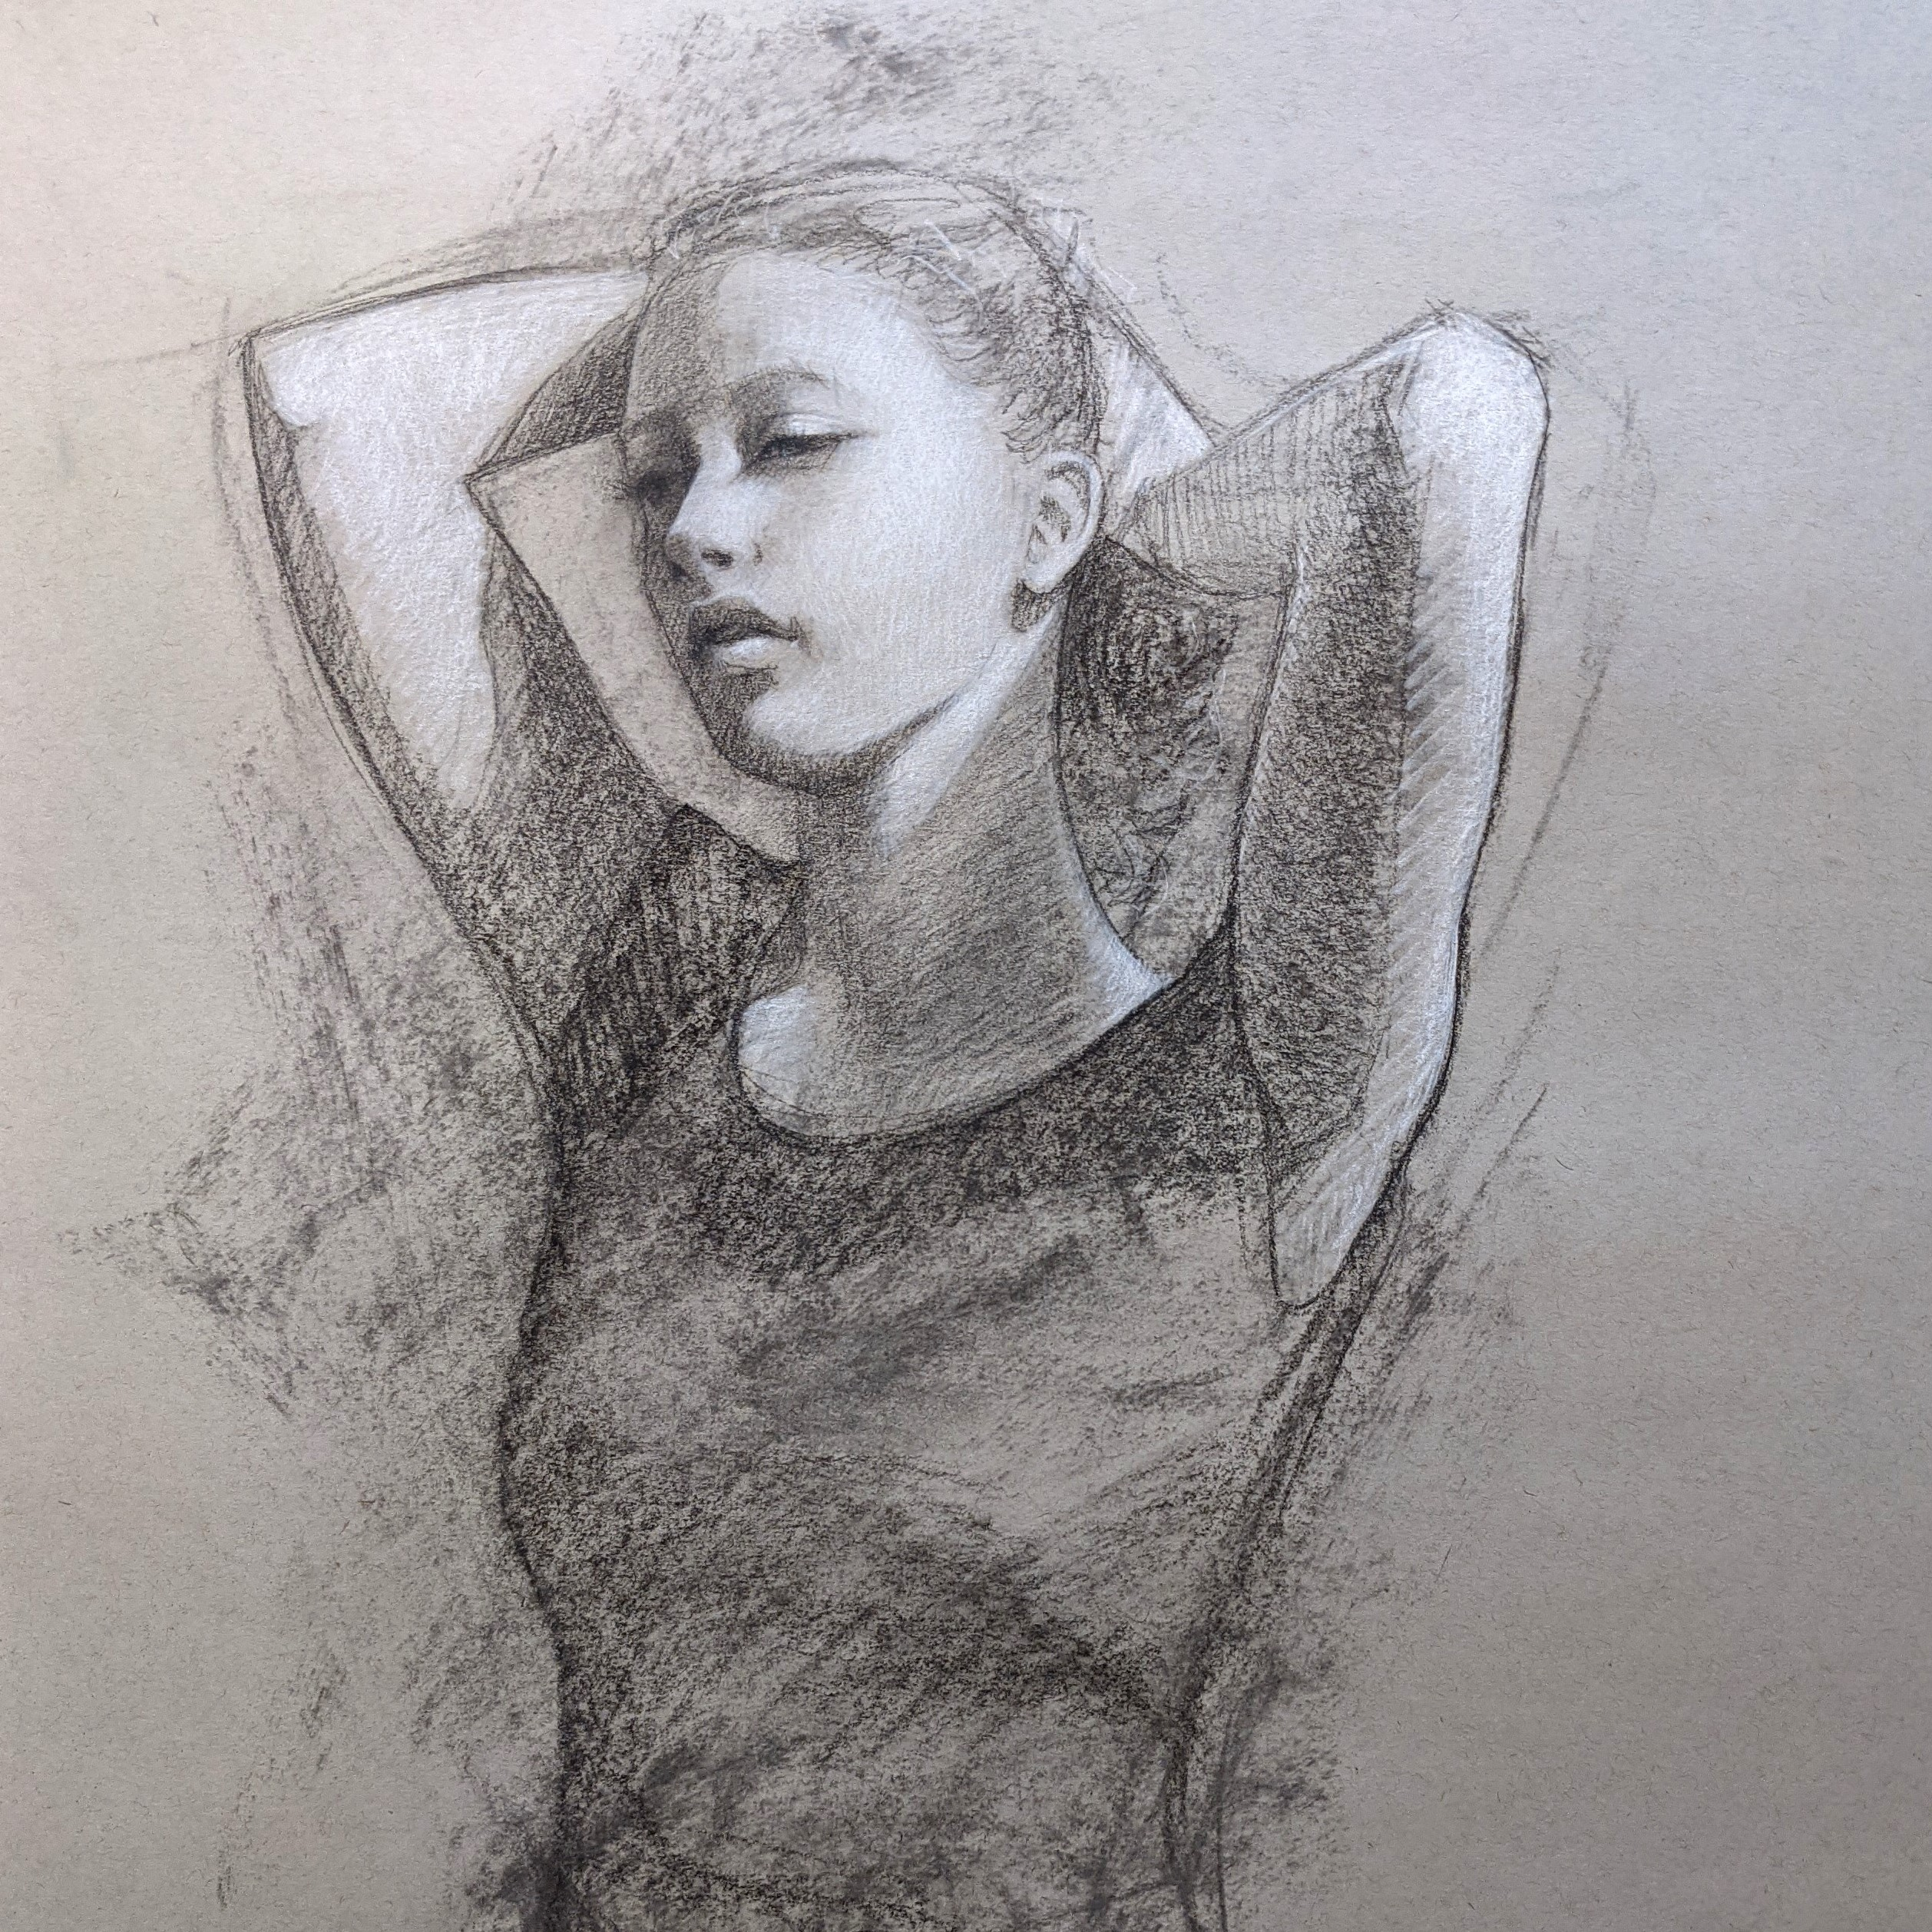 Taylor drawing by artist Lisa Larrabee